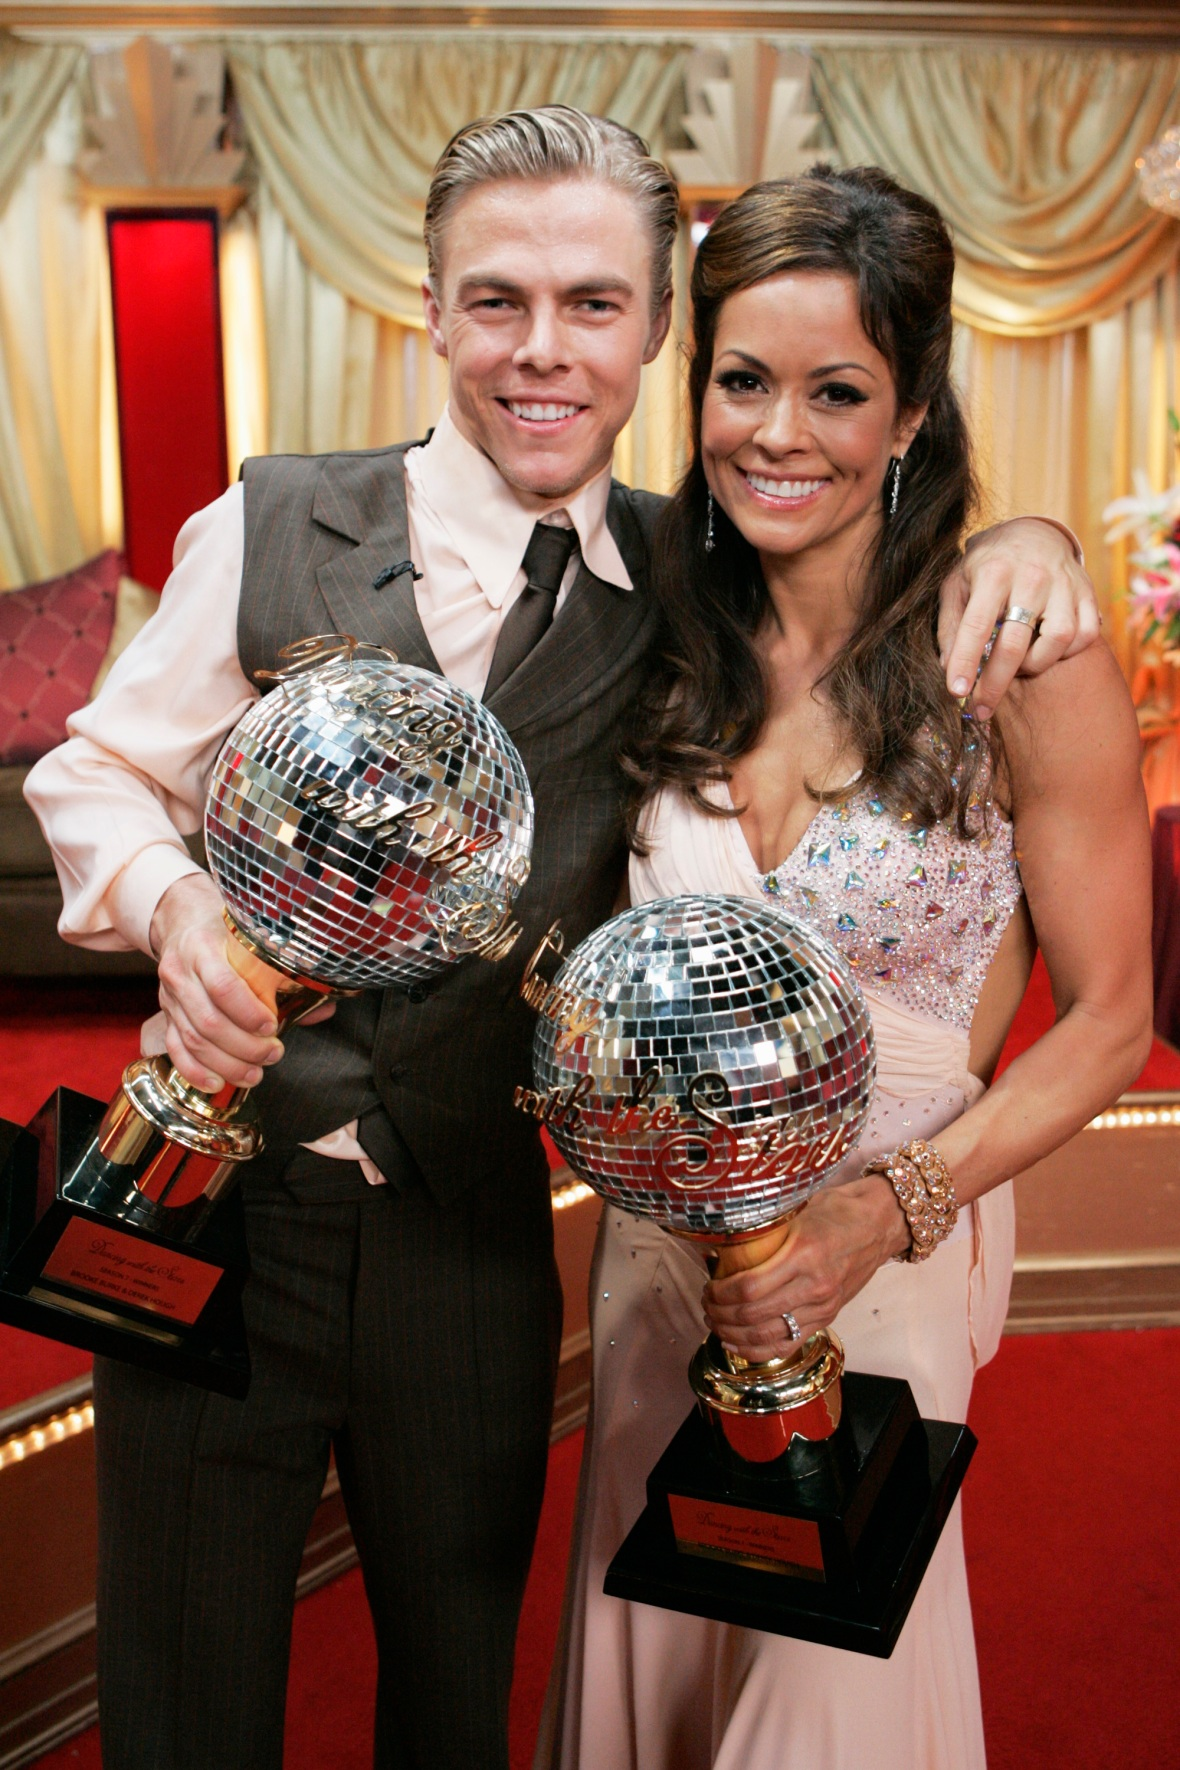 brooke burke-charvet derek hough getty images